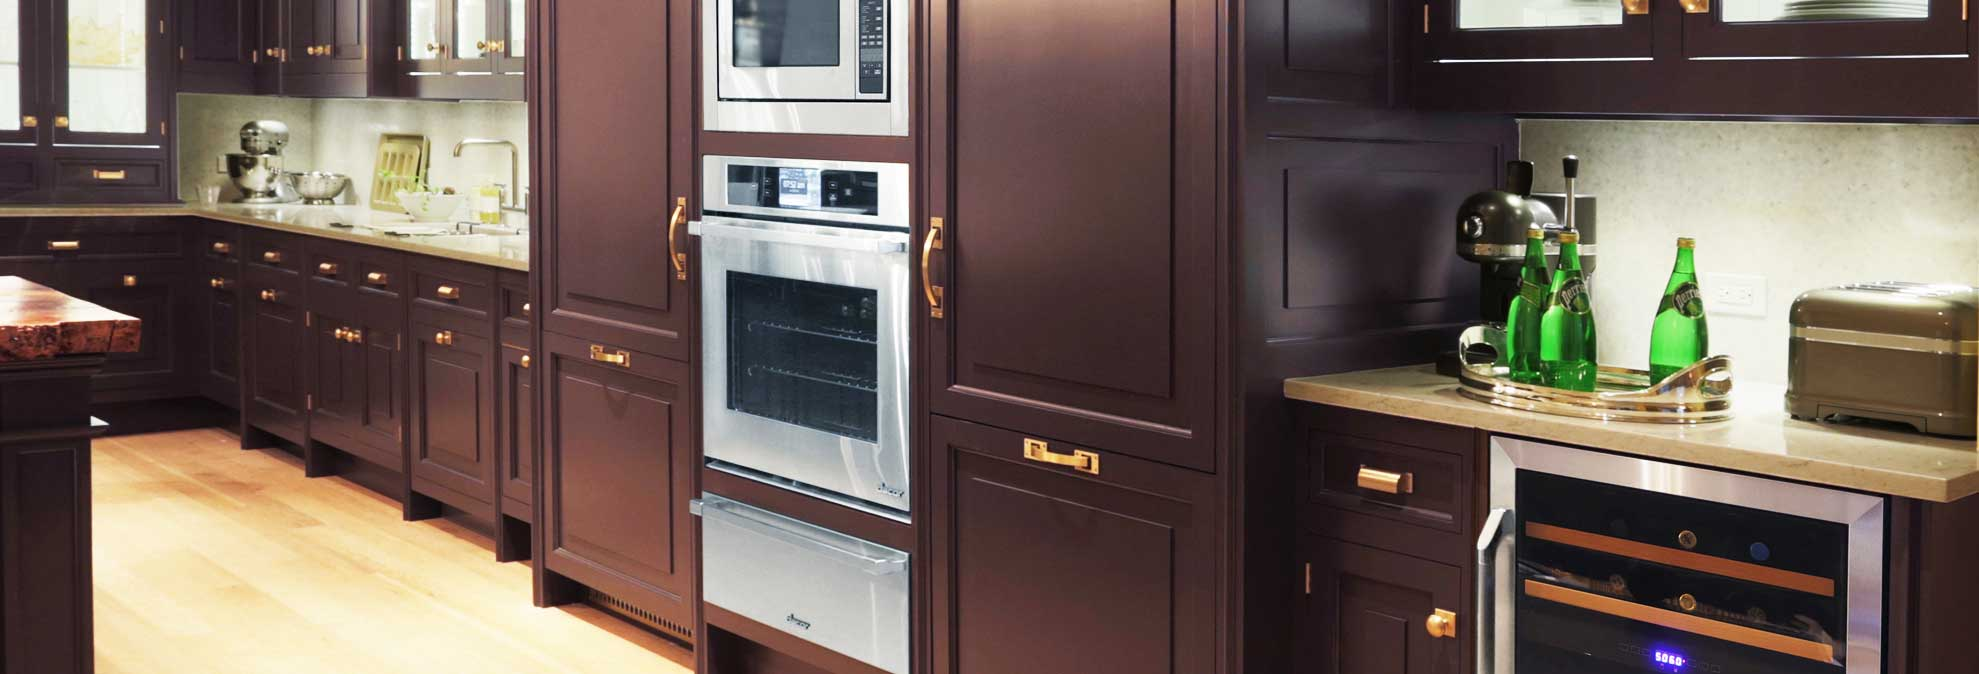 Best quality kitchen cabinets brands - Best Quality Kitchen Cabinets Brands 26